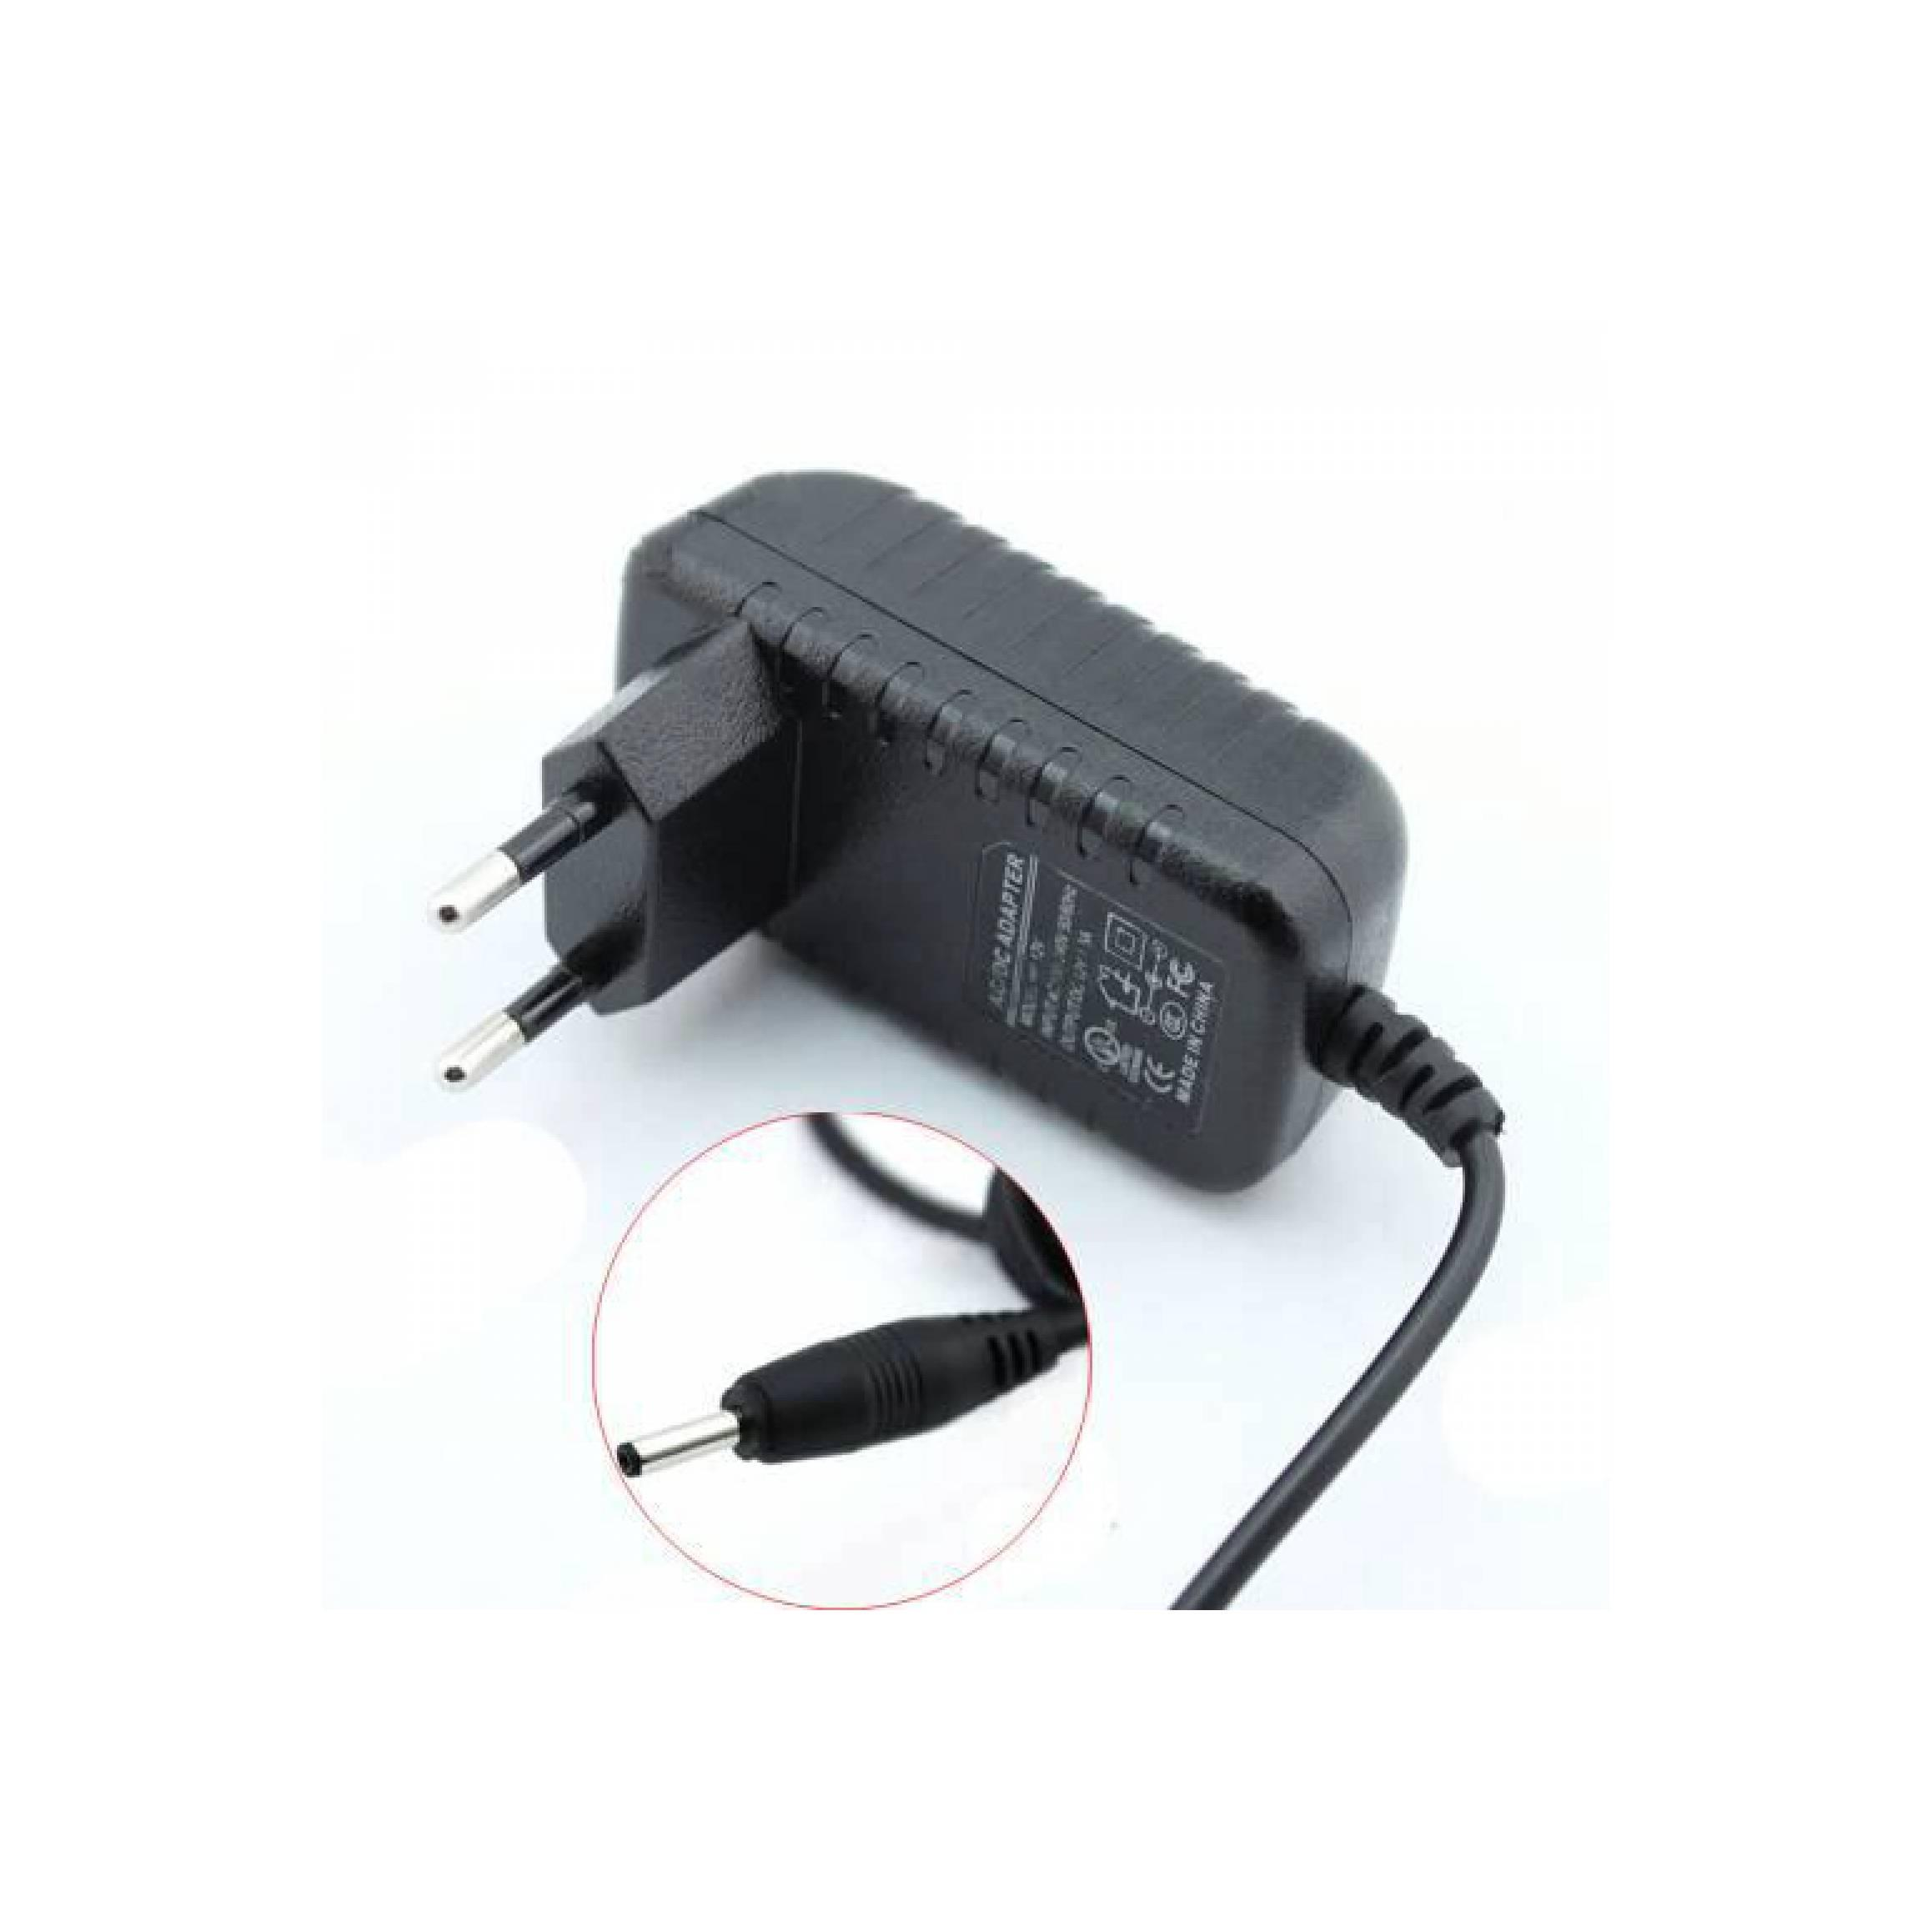 Acer Iconia Tab A100, A101, A200, A500, A501 Wall Charger